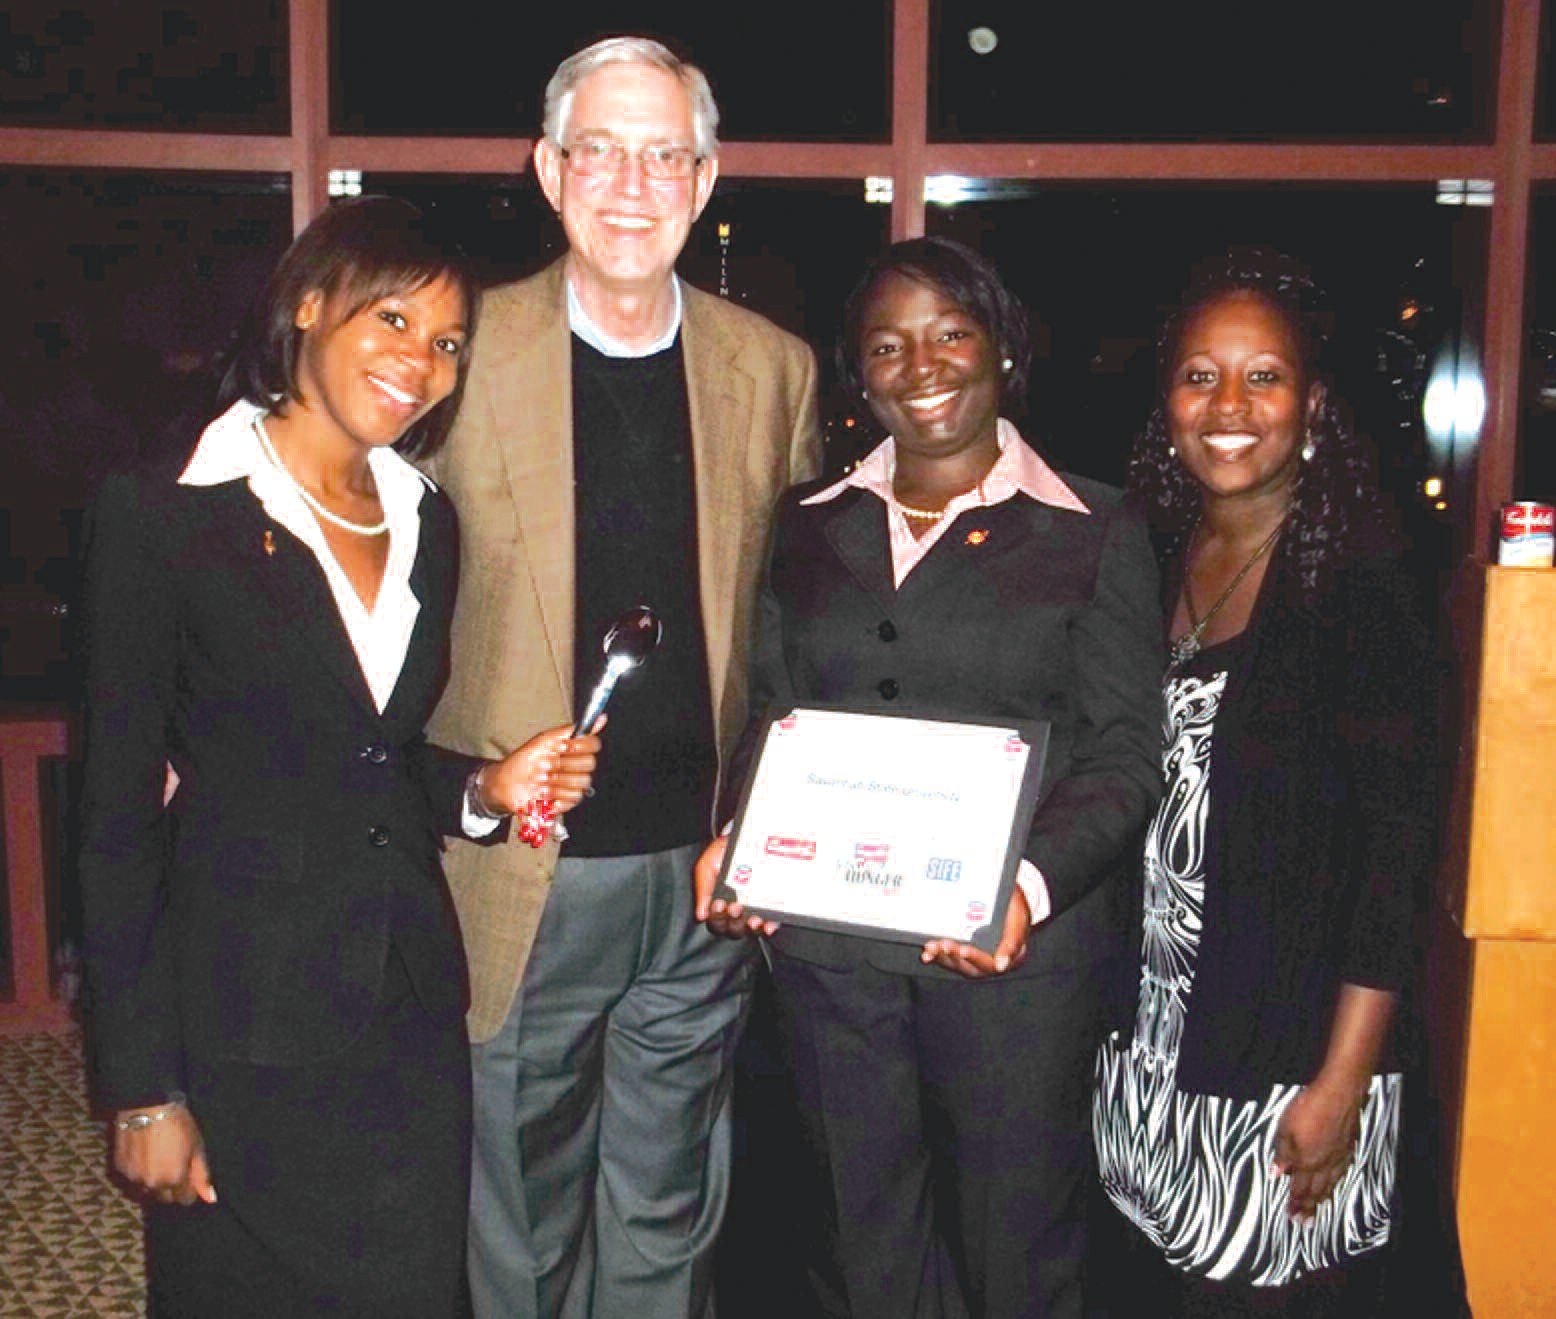 Left to right: Rachel Raines, president, SSU chapter of SIFE; Douglas R. Conant, president and CEO, Campbell Soup Co.; Ericka Williams, treasurer, SIFE; Shalonda K. Bradford, founding adviser and lecture of business management